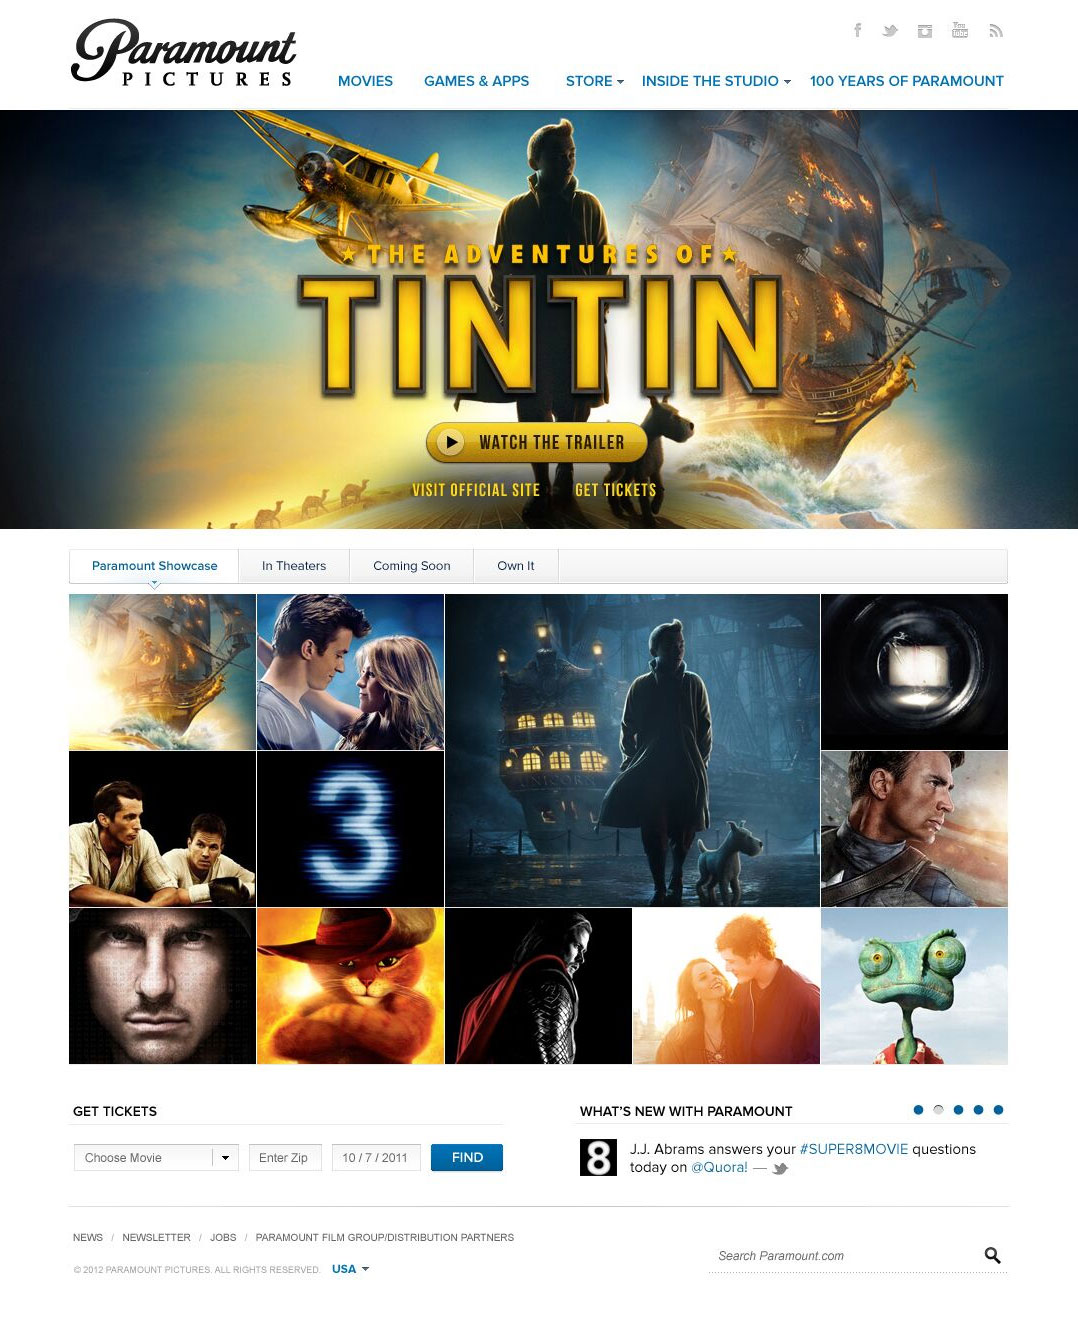 paramountpictures.com home page